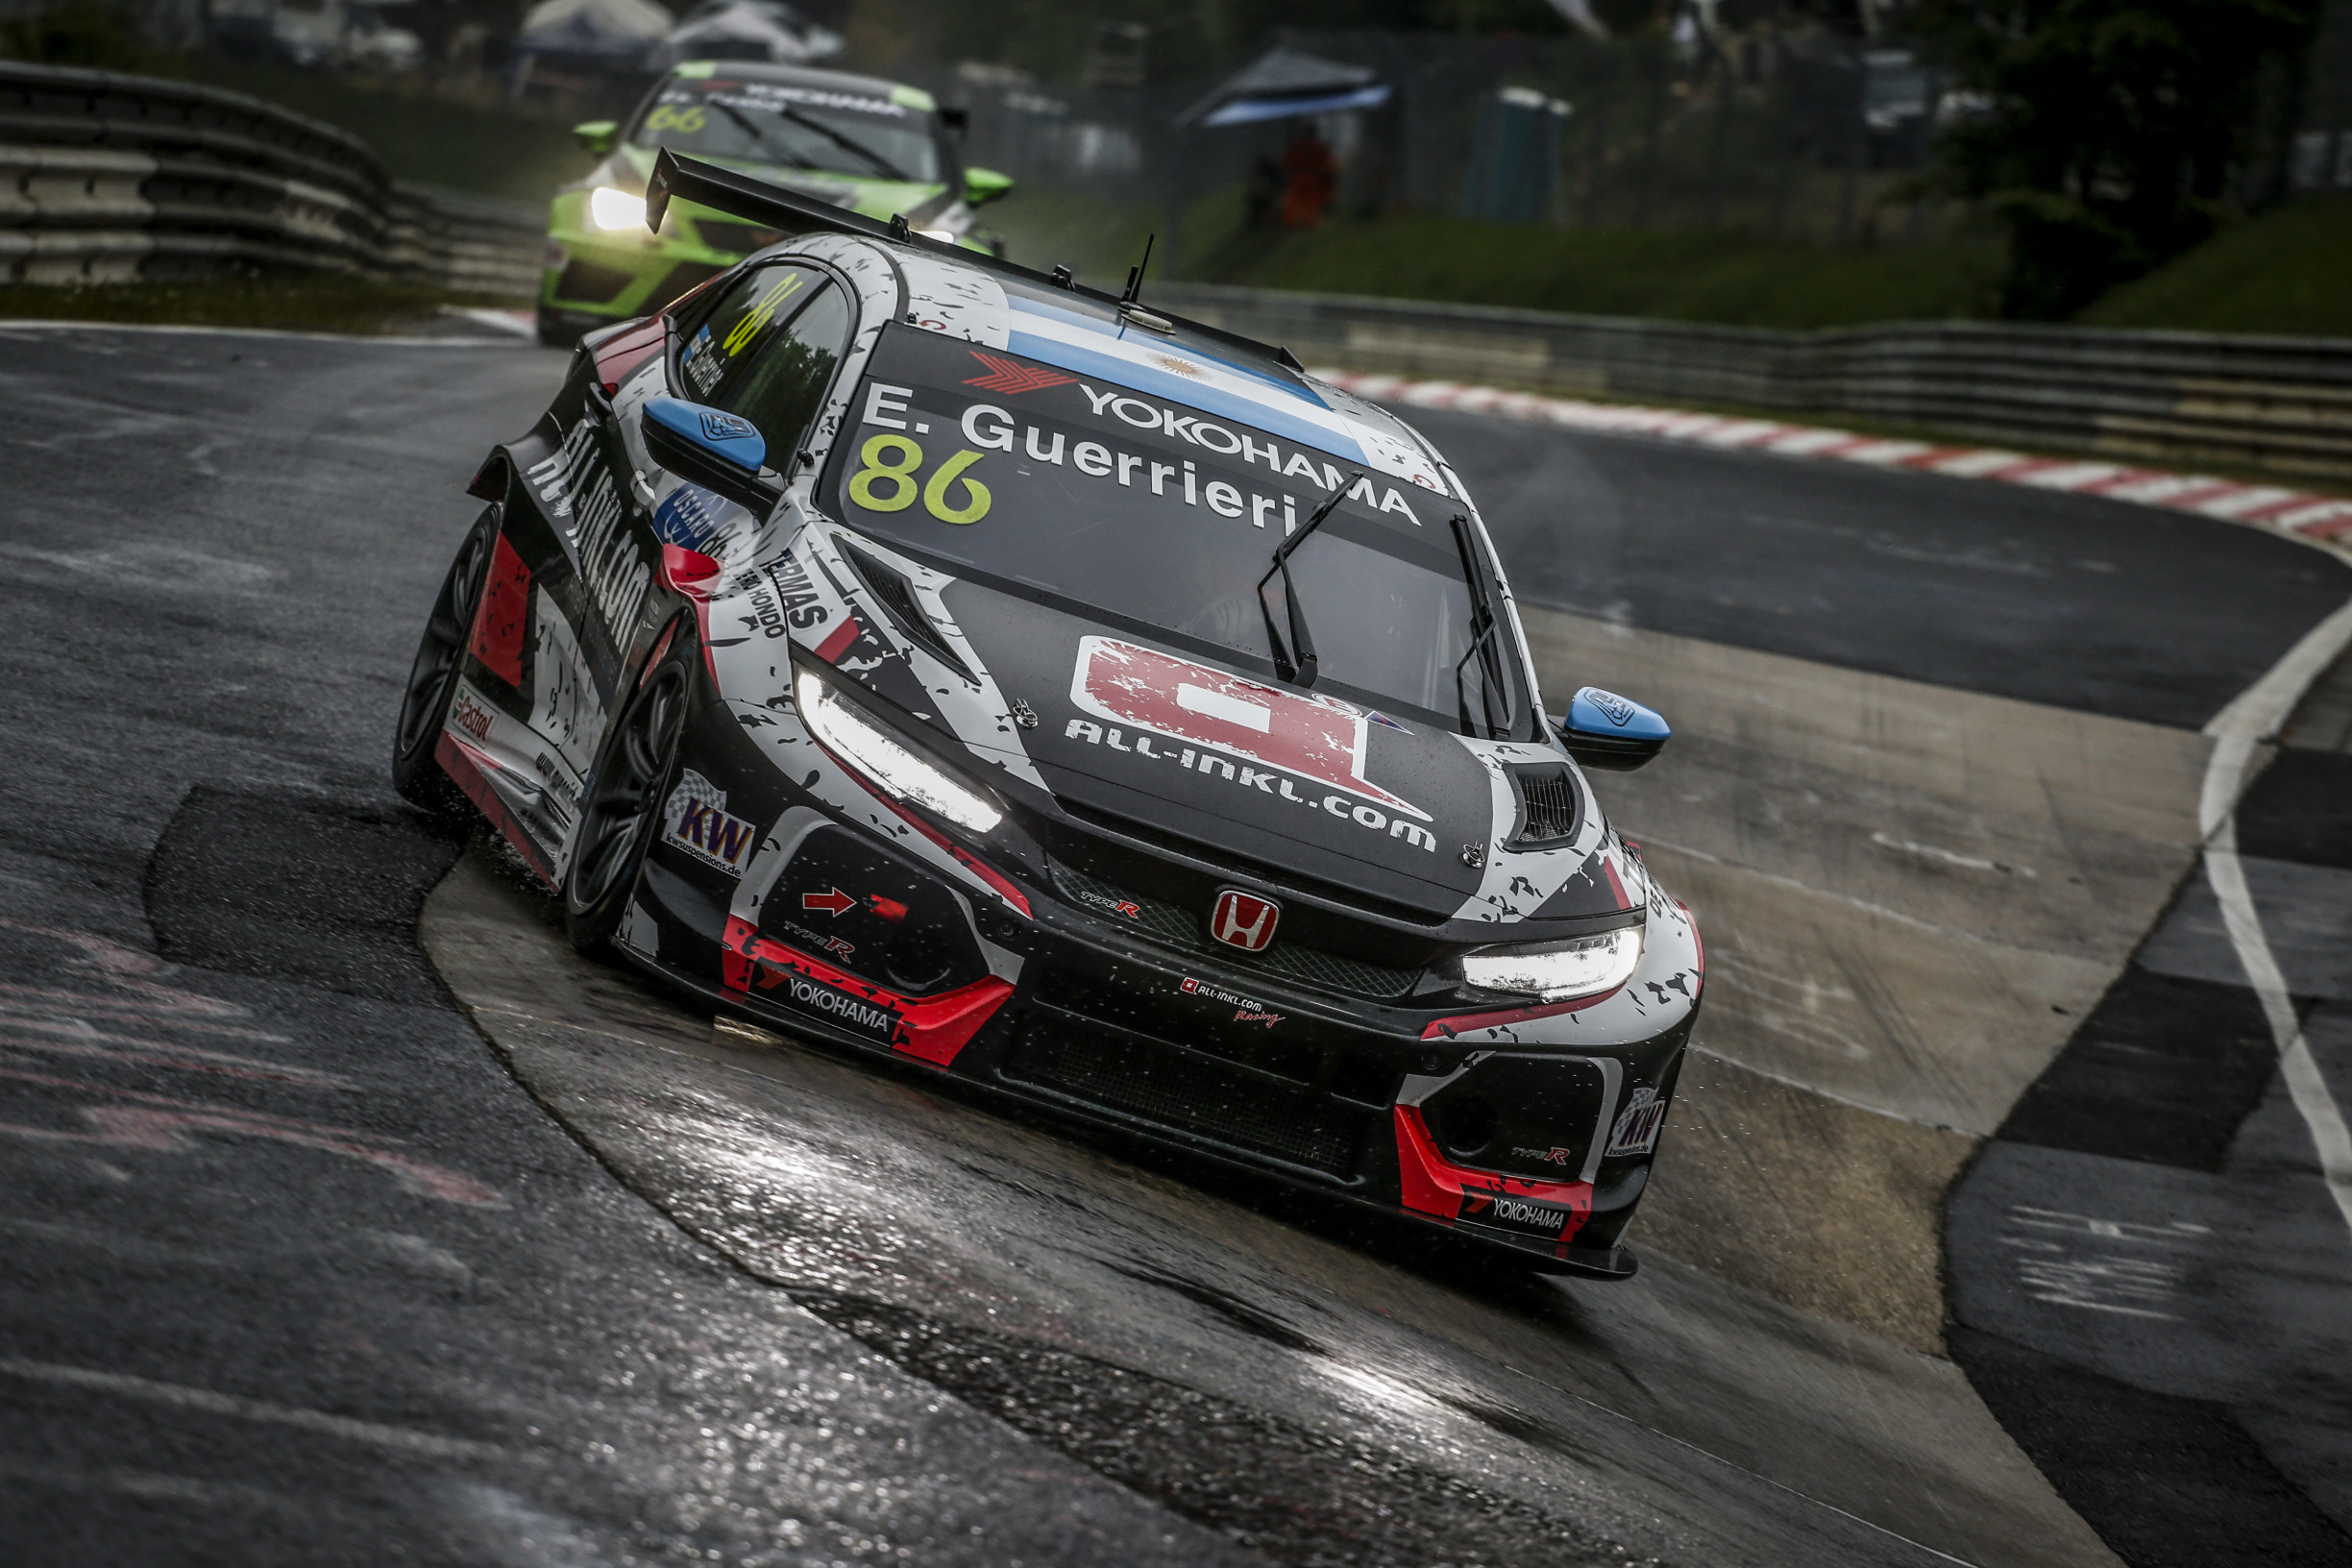 Honda Say Wtcr Entry For 2019 Still To Be Decided